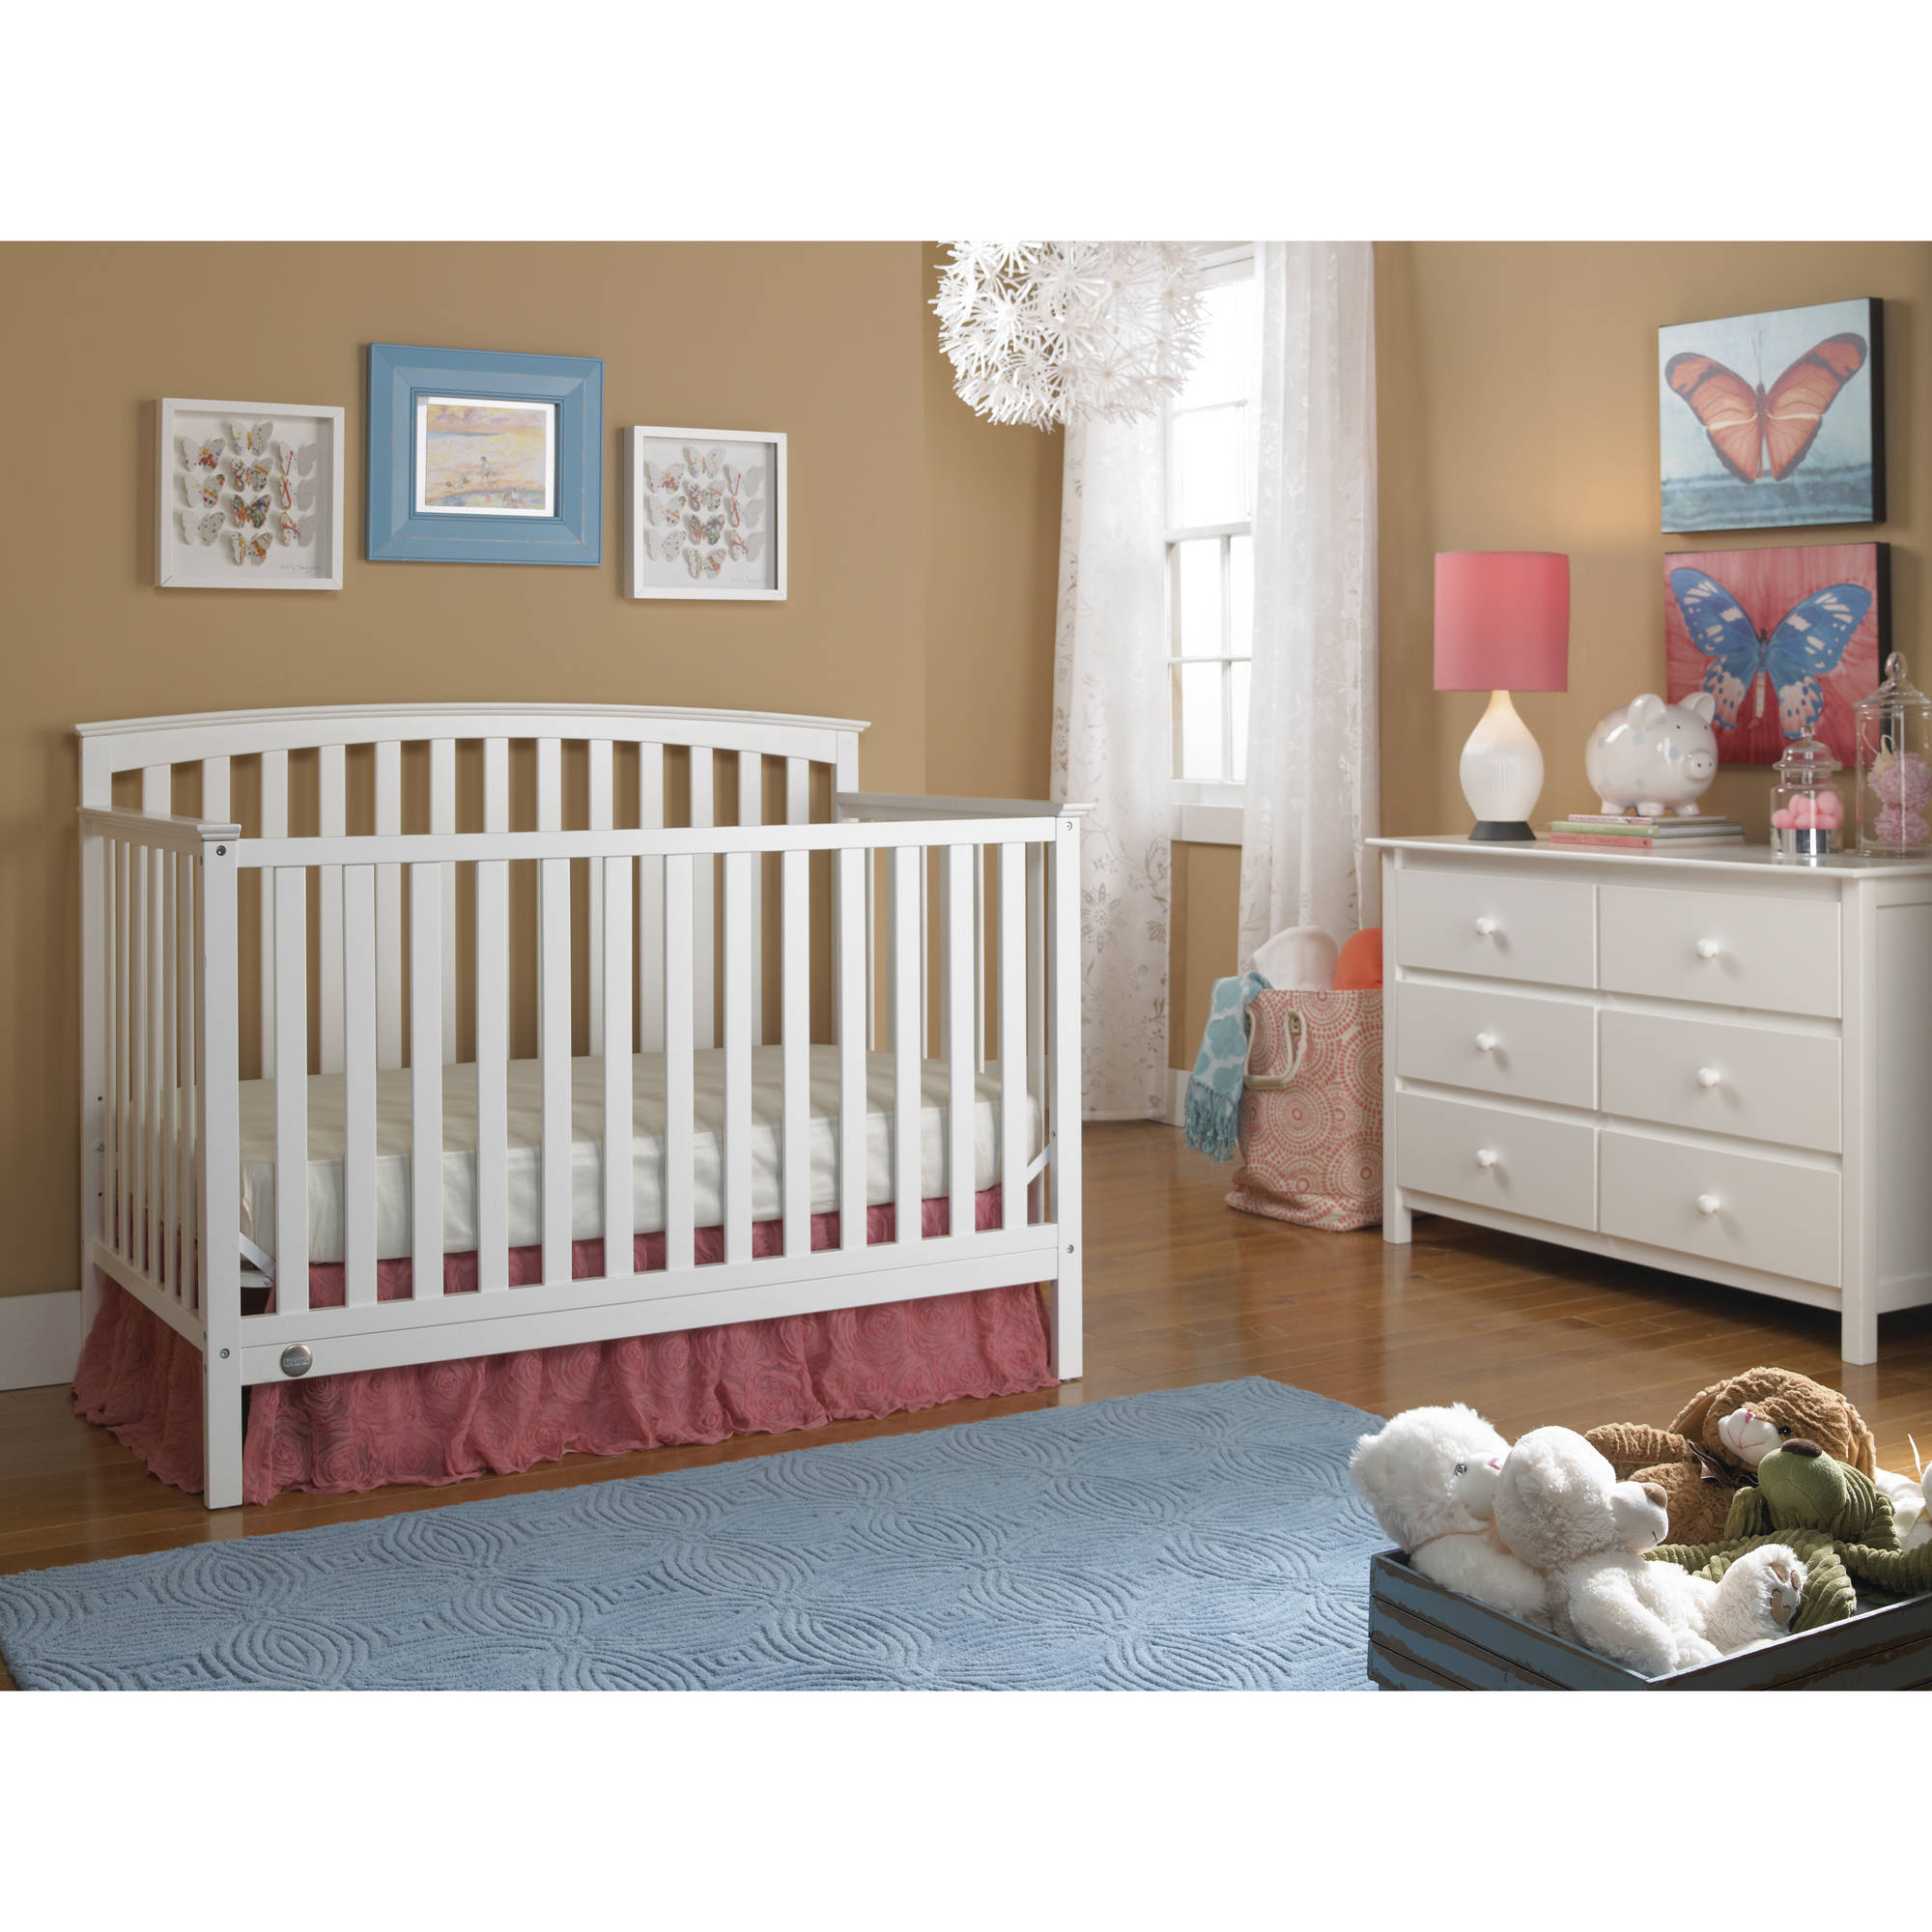 Fisher-Price Jesse 4-in-1 Convertible Crib Collection, Snow White